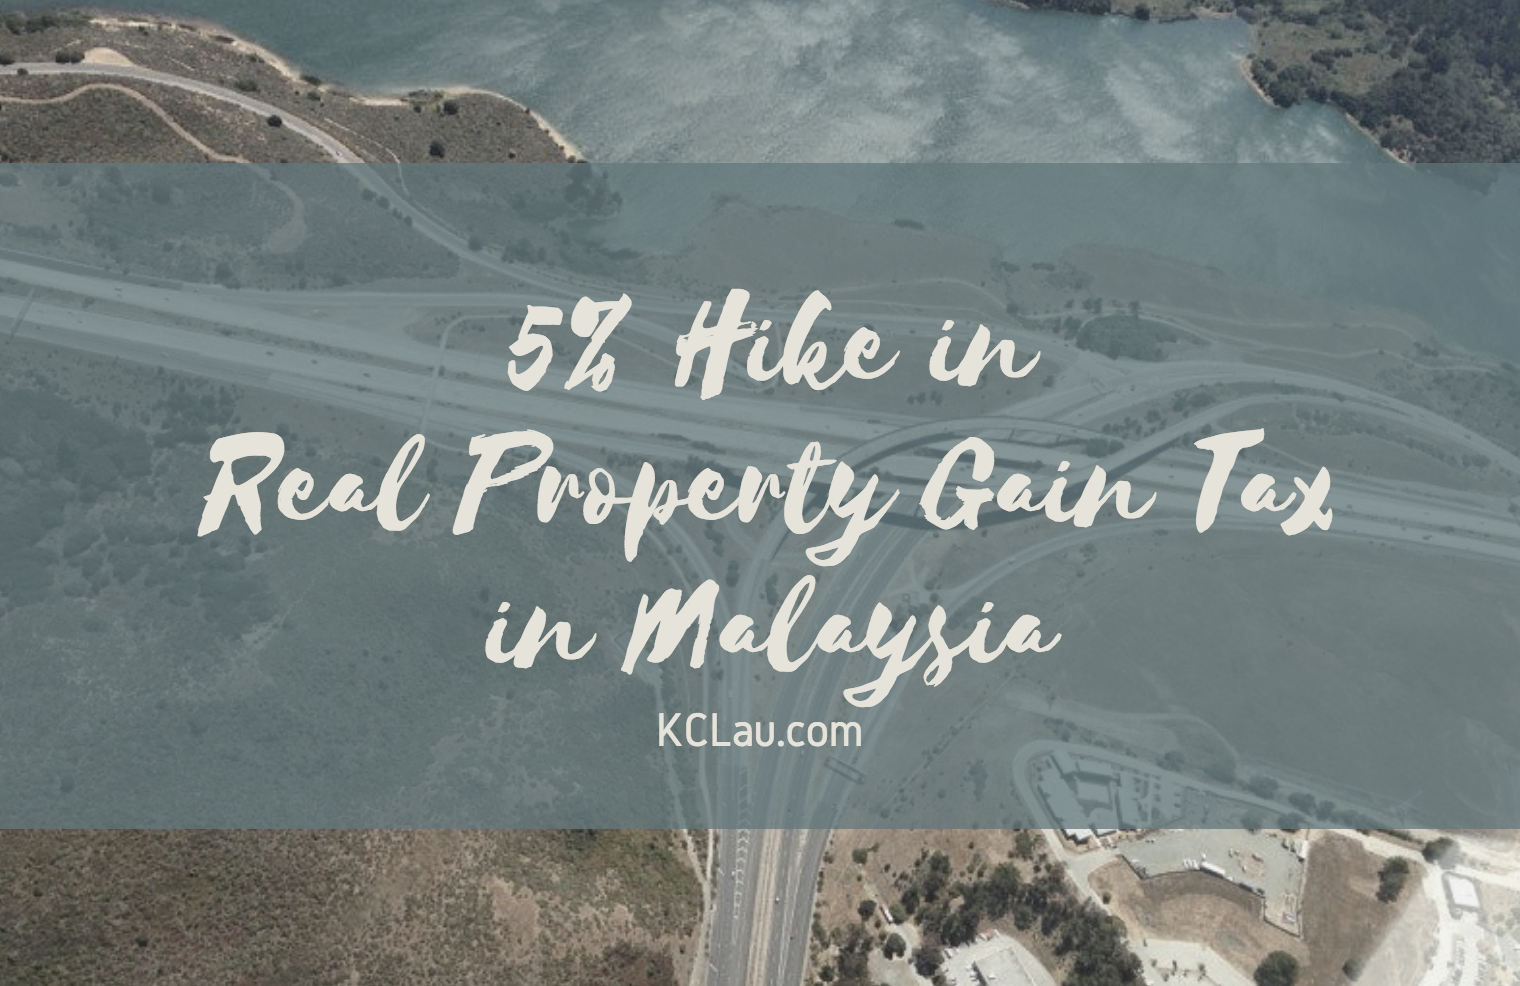 5% Hike in Real Property Gain Tax (RPGT) in Malaysia 2019